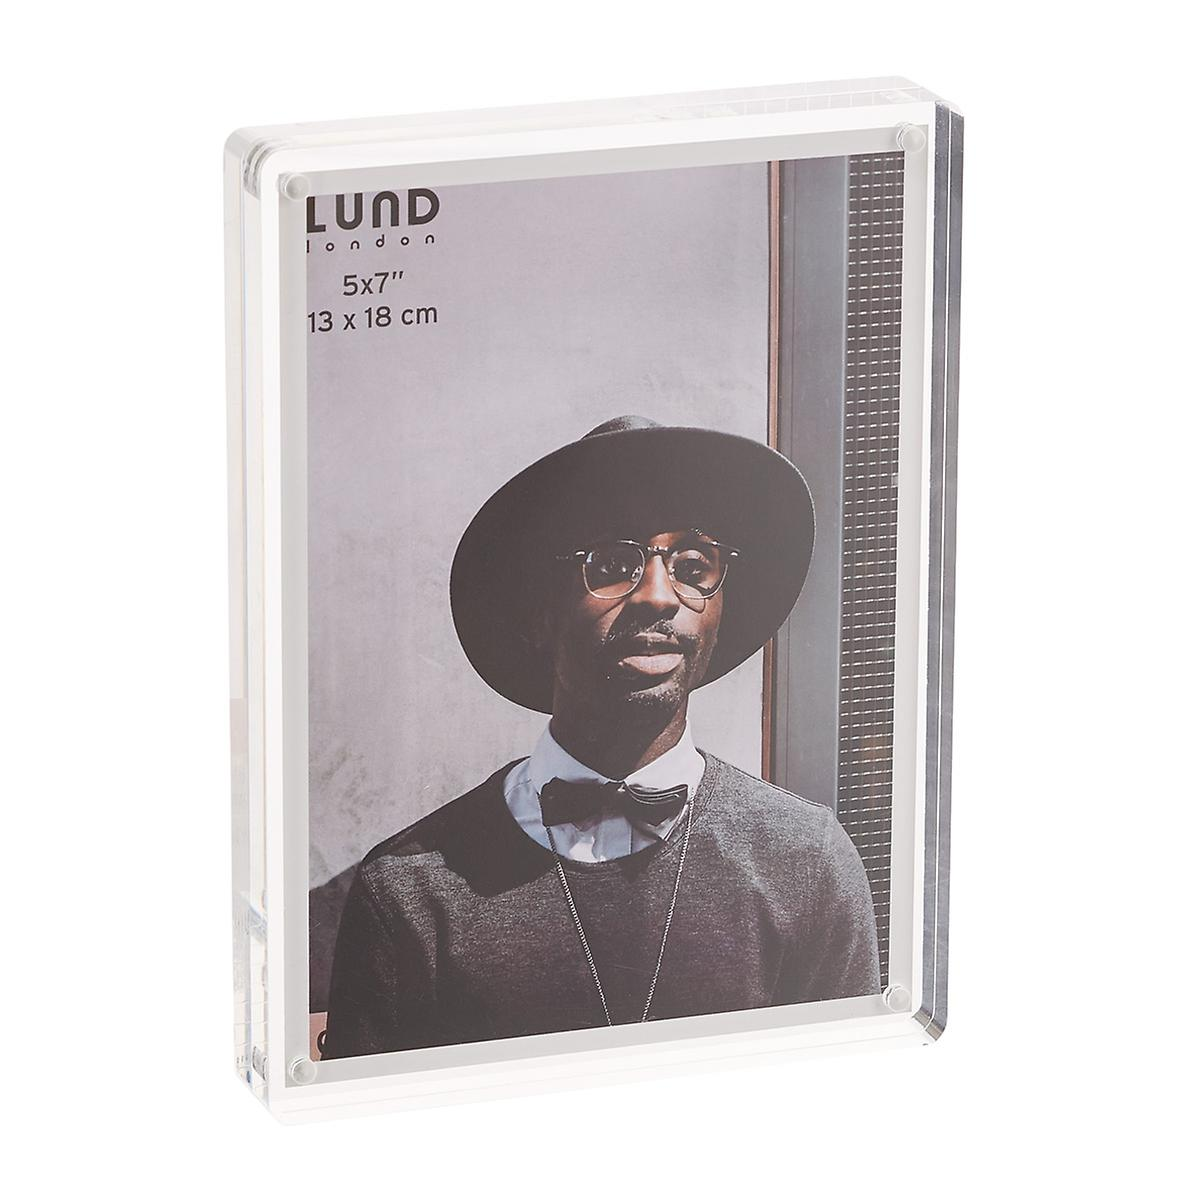 Lund London 5 x 7 Premium Acrylic Photo Frame